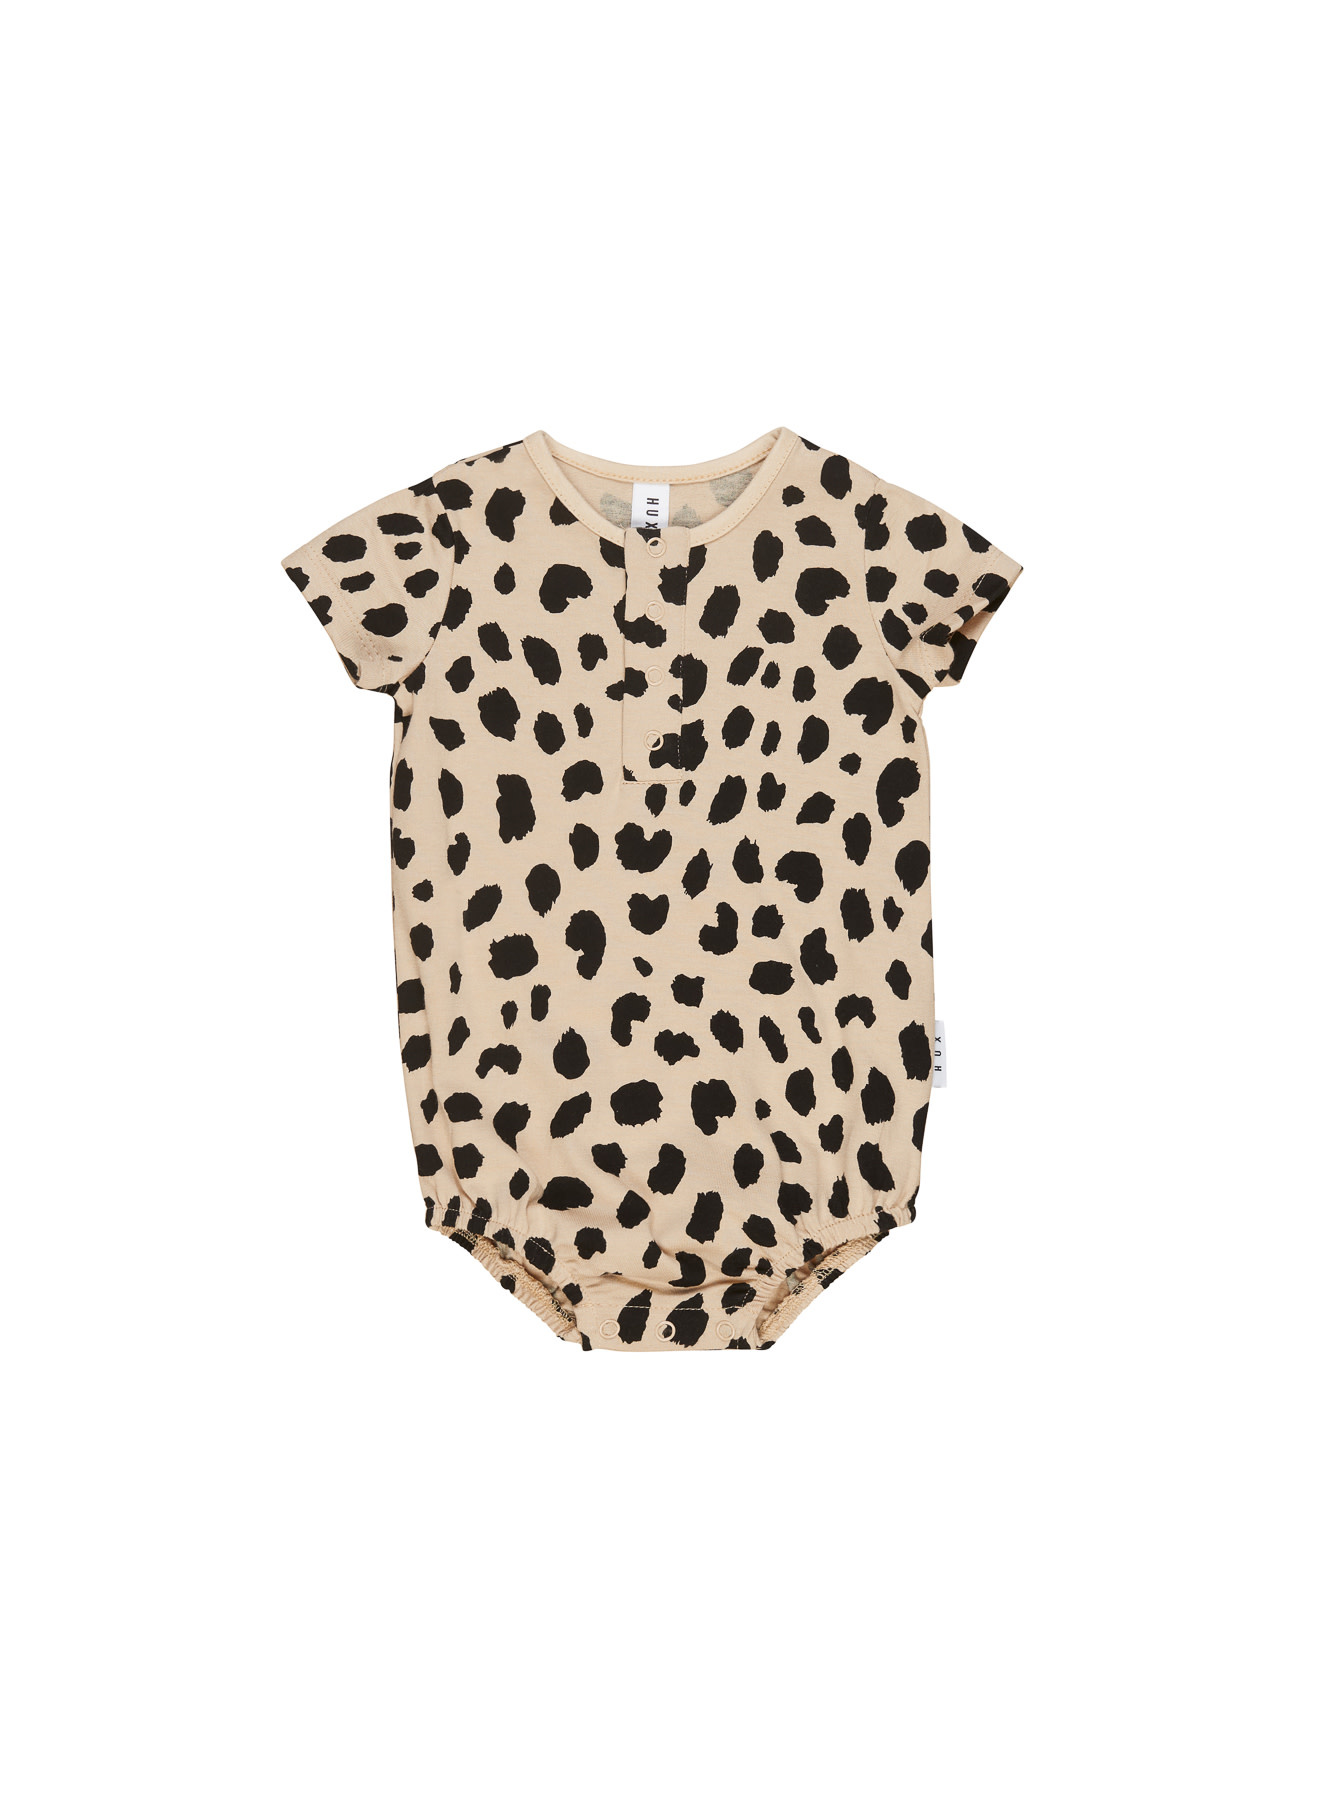 HUX BABY Animal Spot Bubble Onesie